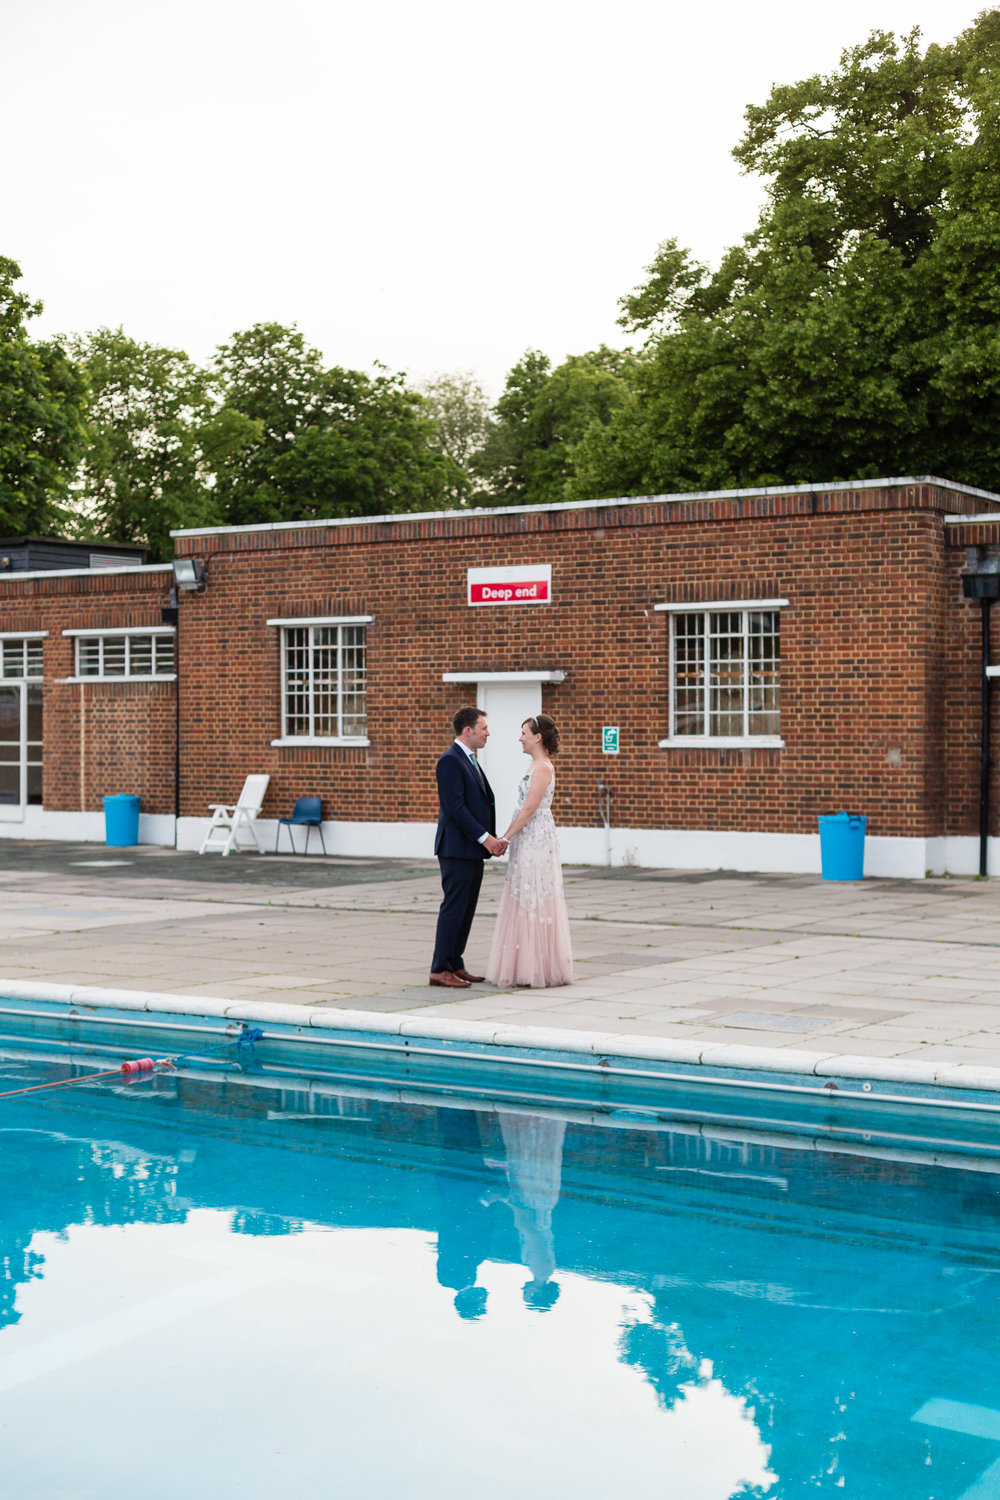 brockwell-lido-brixton-herne-hill-wedding-377.jpg